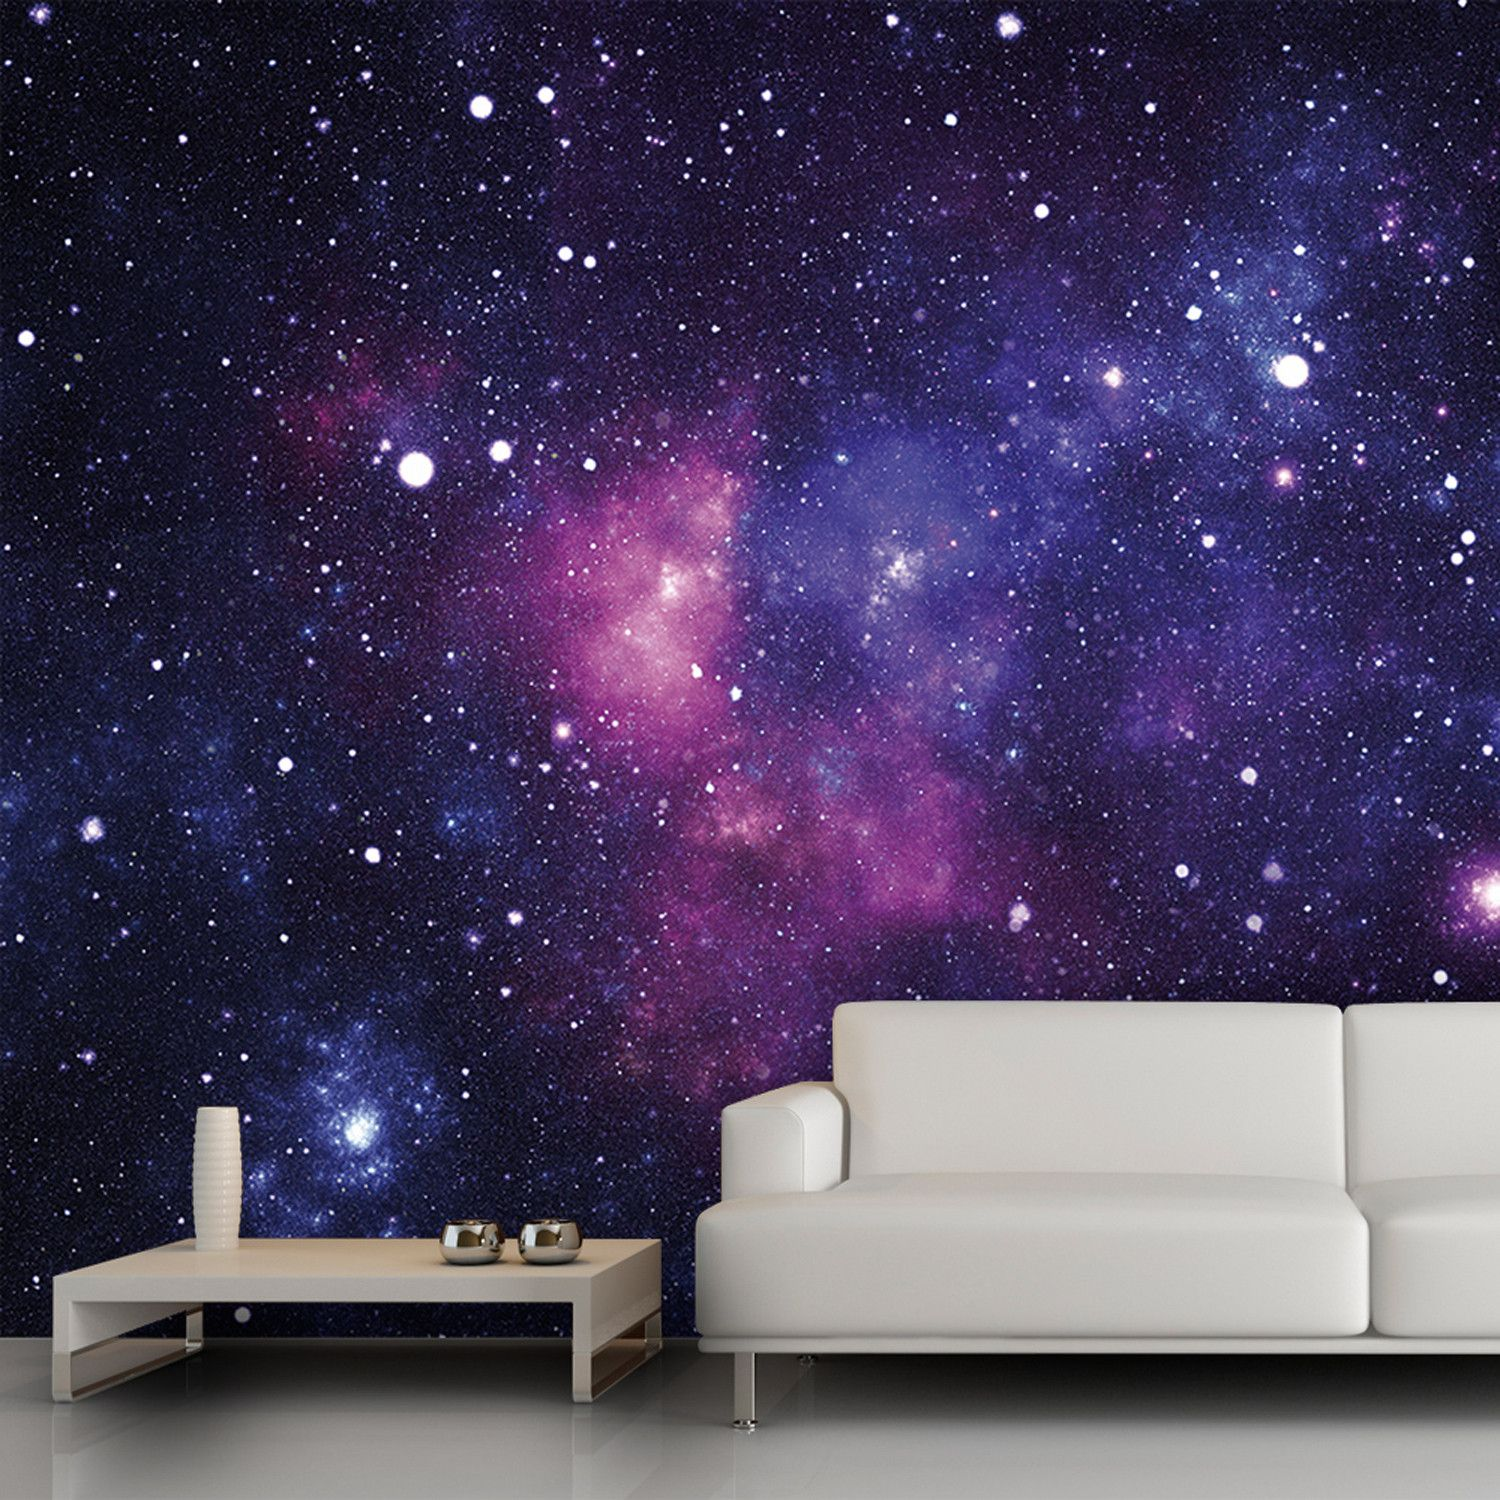 galaxy wall mural 13 x9 54 trying to think of cool wall decor galaxy wall mural 13 x9 54 trying to think of cool wall